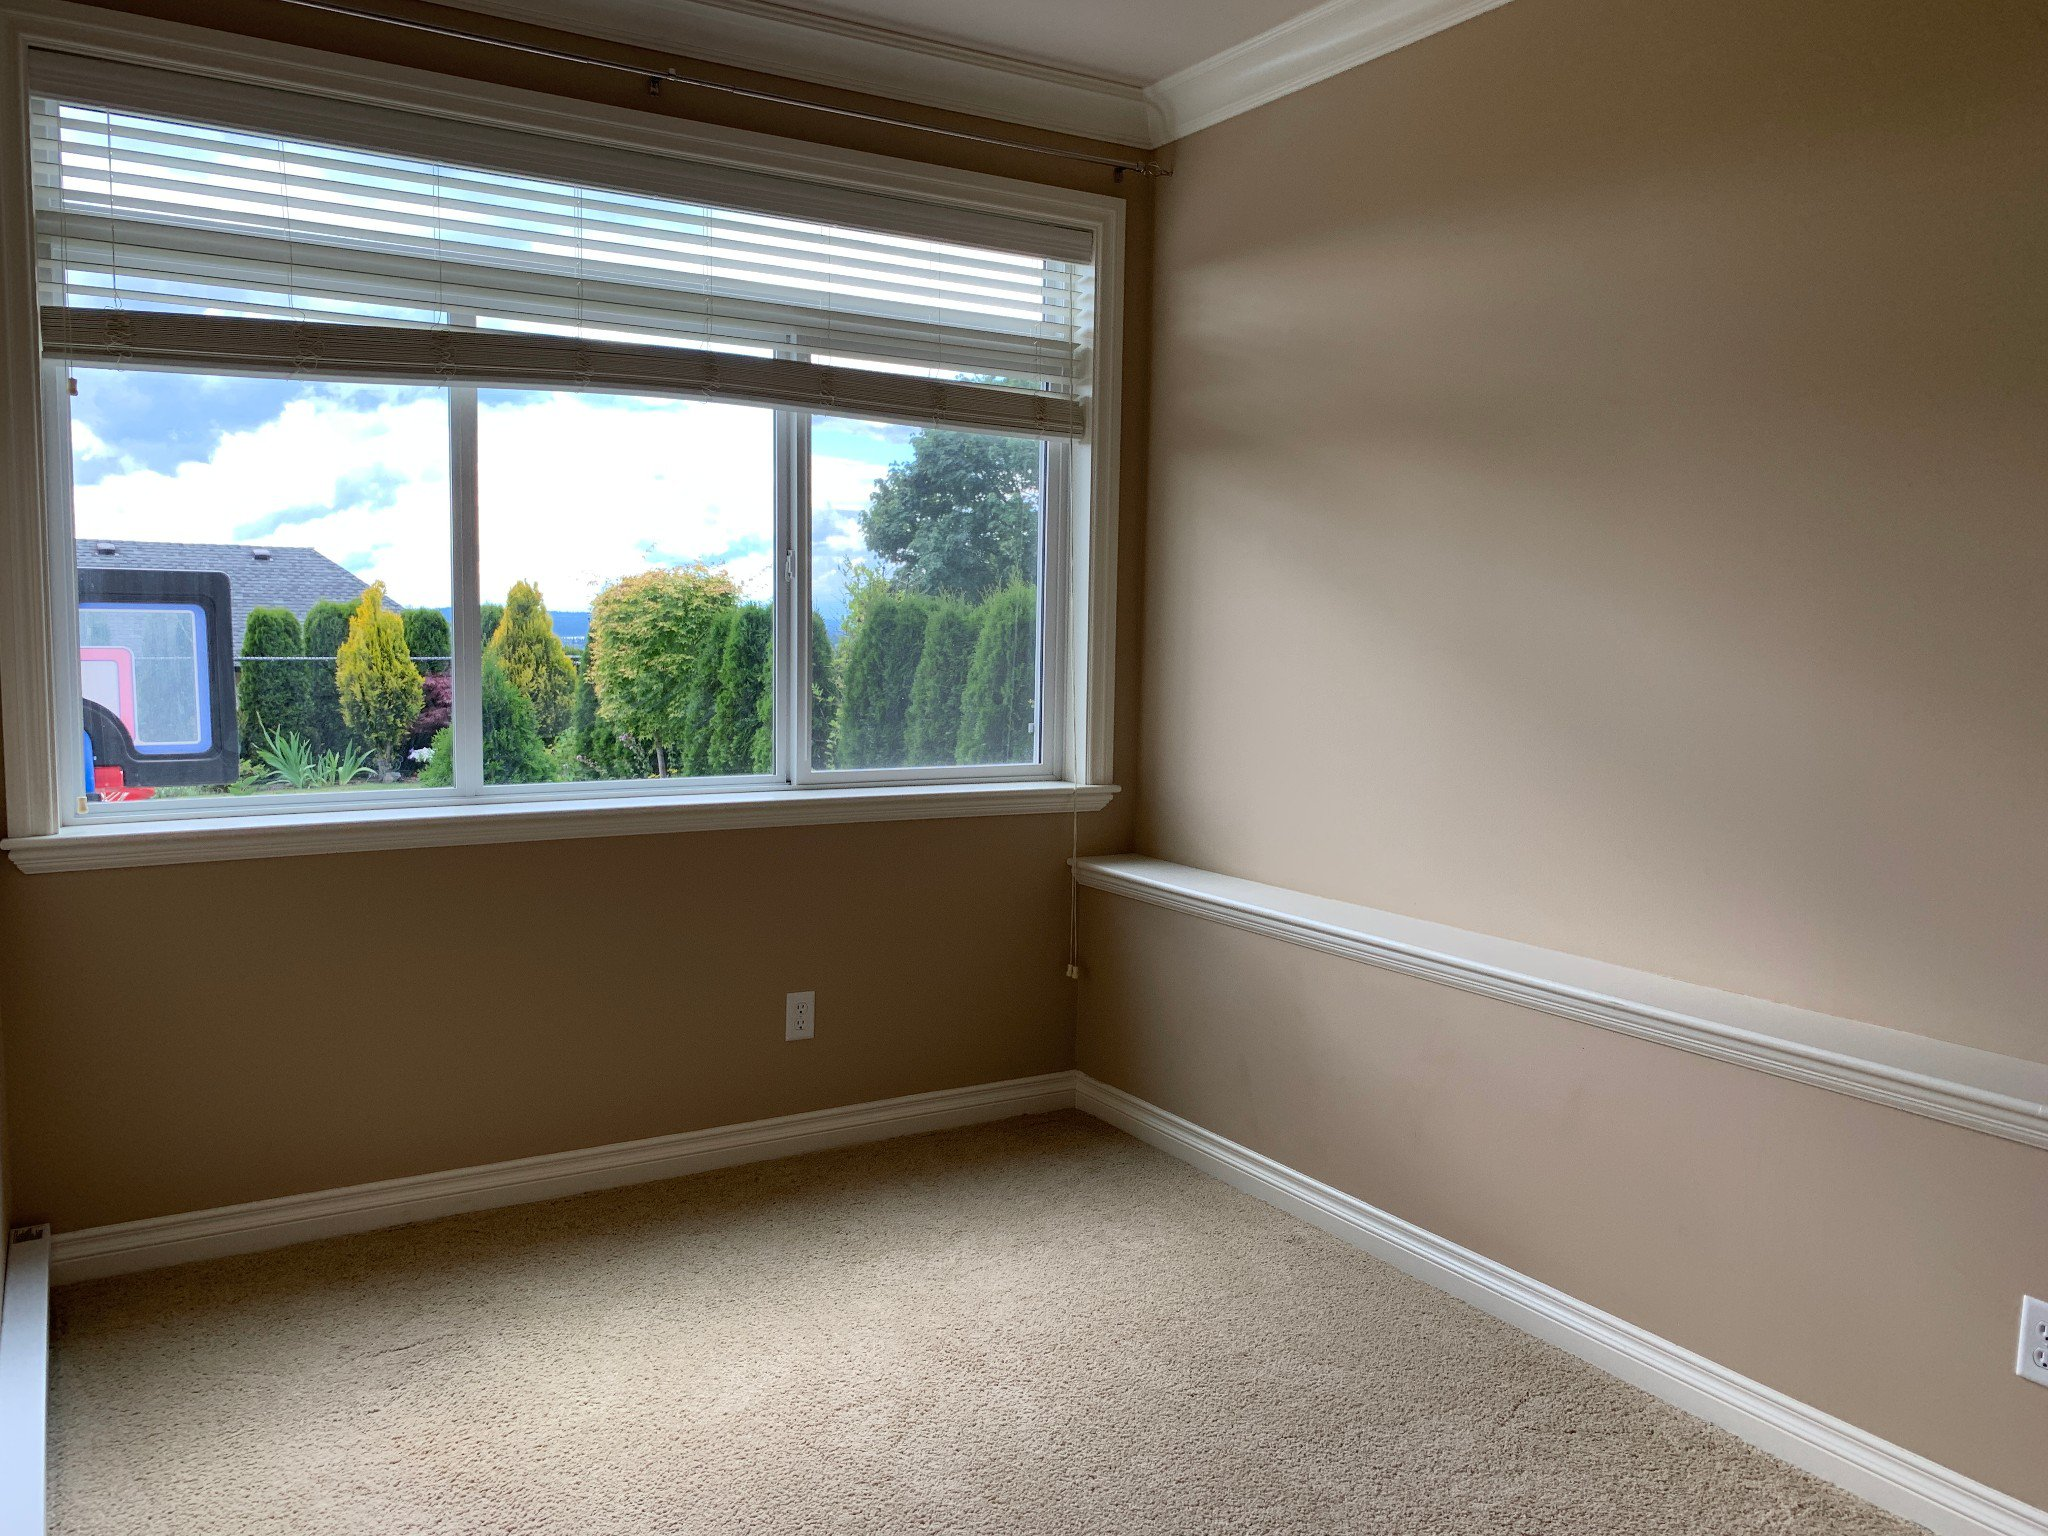 Photo 8: Photos: BSMT 3975 Caves Court in Abbotsford: Abbotsford East Condo for rent